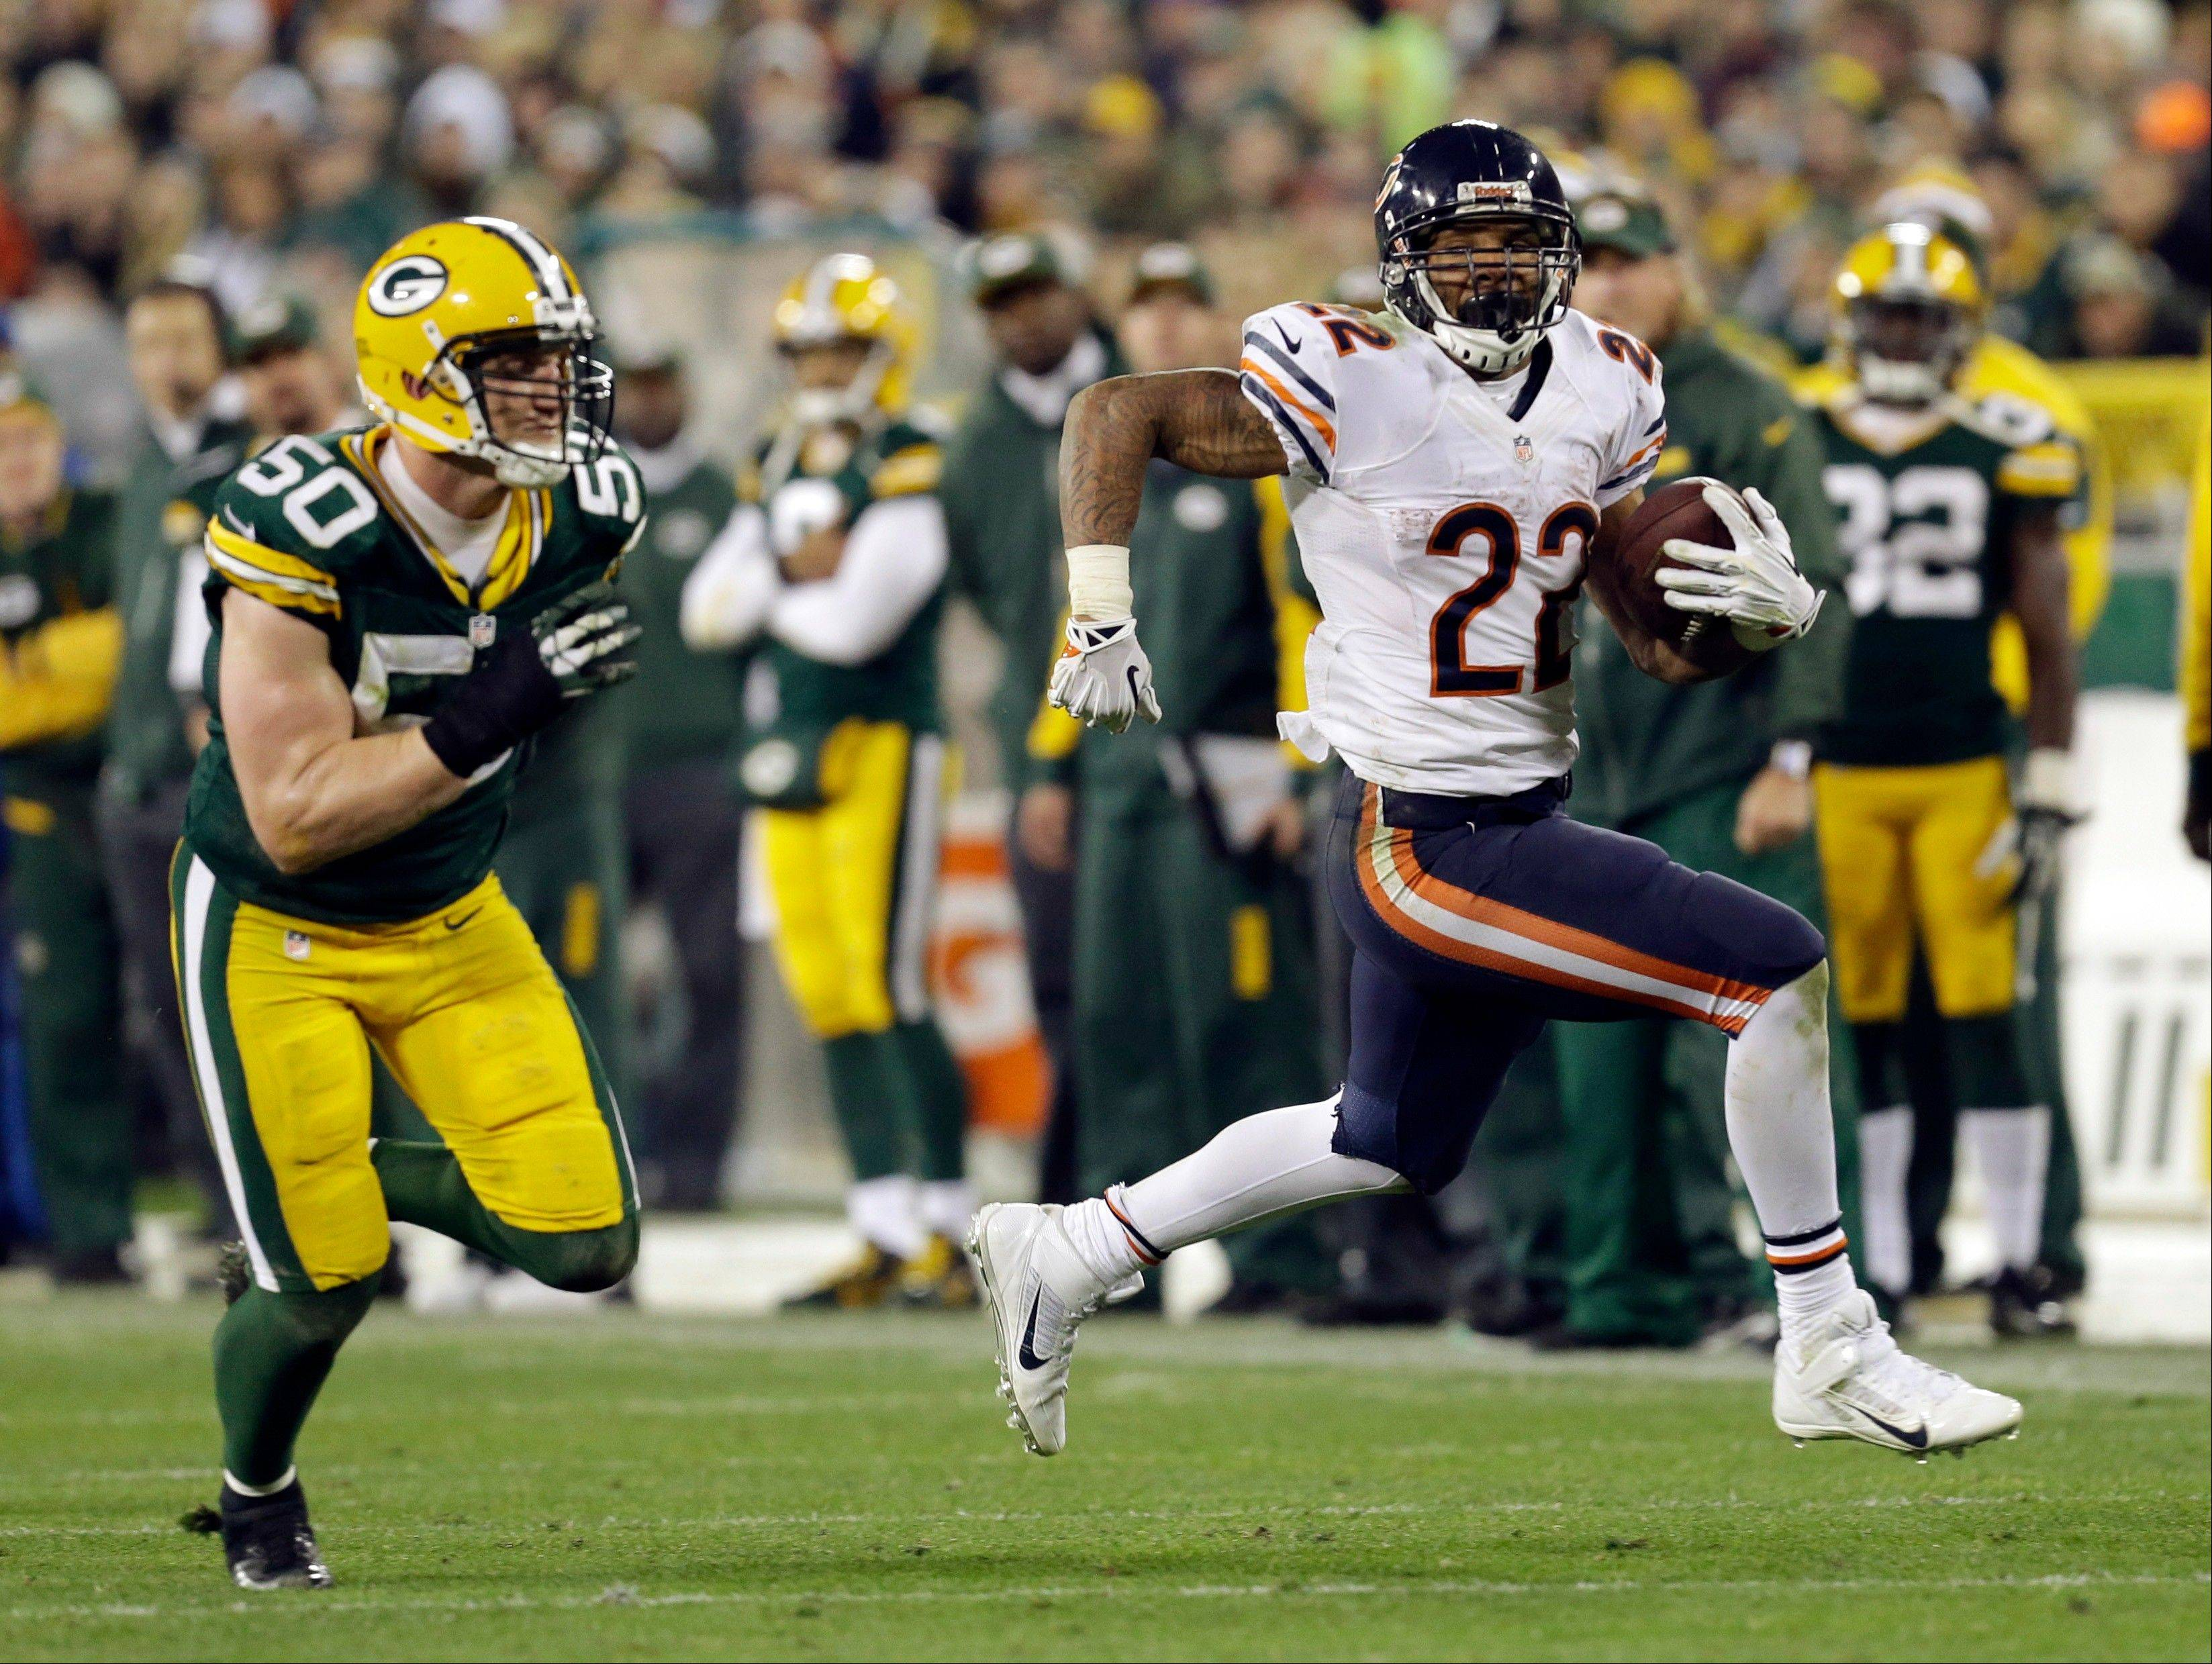 The Bears' Matt Forte sprints past the Packers' A.J. Hawk in the second half Monday. With 7:50 left in the game, Forte converted on fourth-and-inches from the Bears' 32 to prolong a game-saving drive.